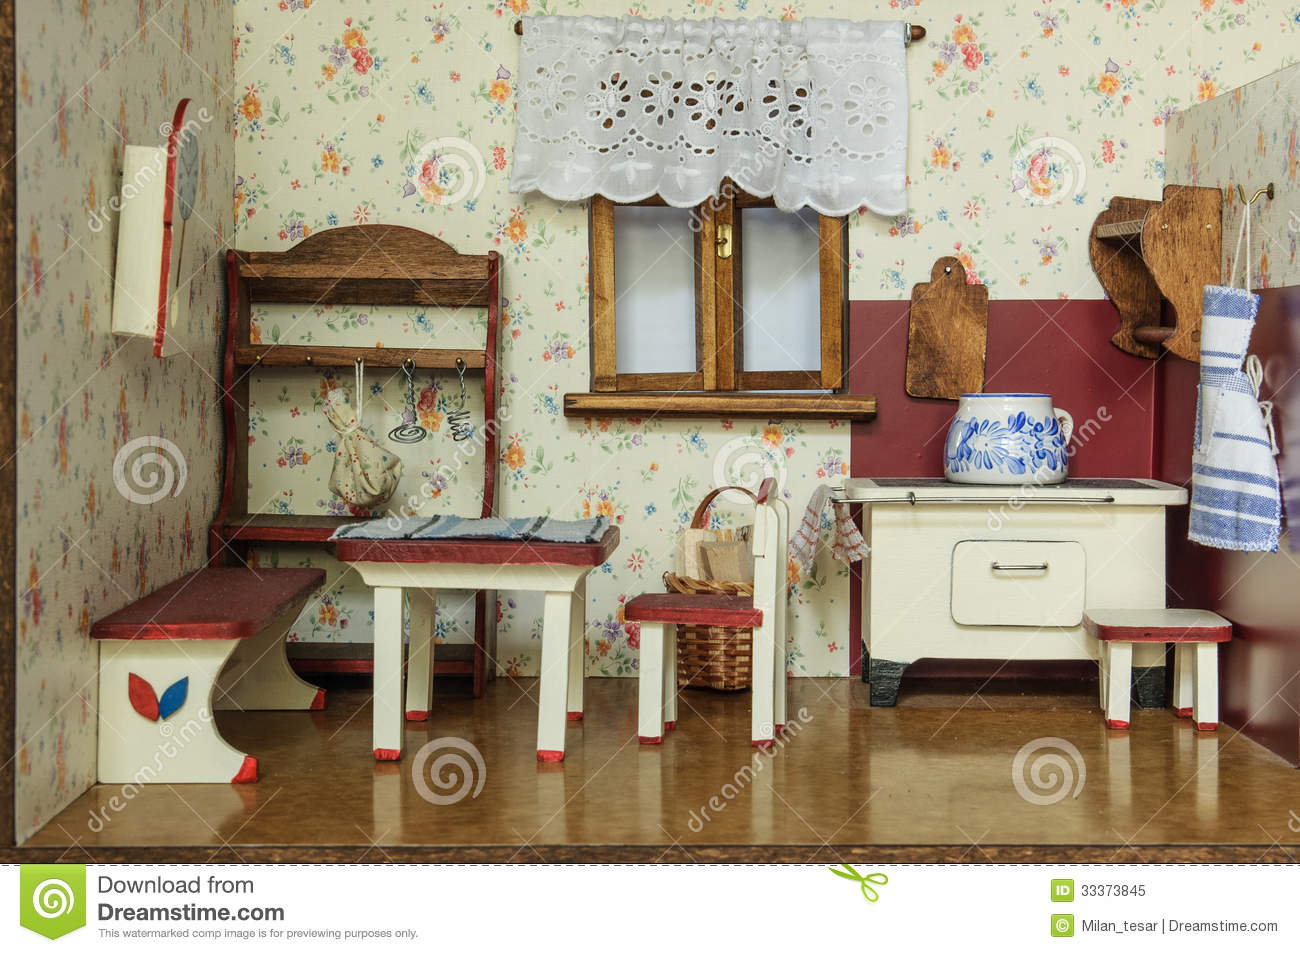 Vintage Doll House Royalty Free Stock Photo Image 33373845